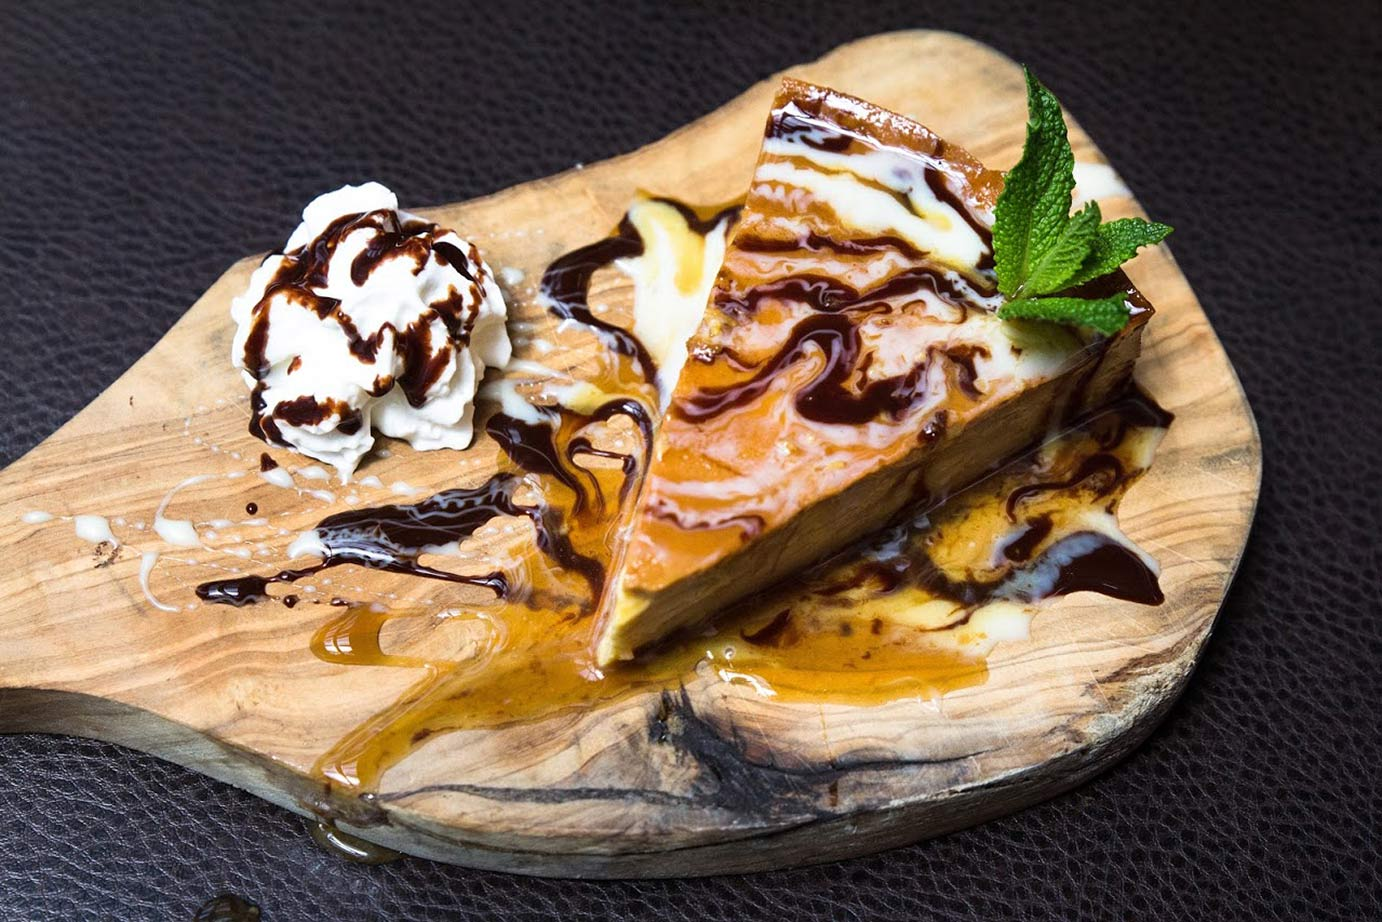 photo of cheesecake with syrup